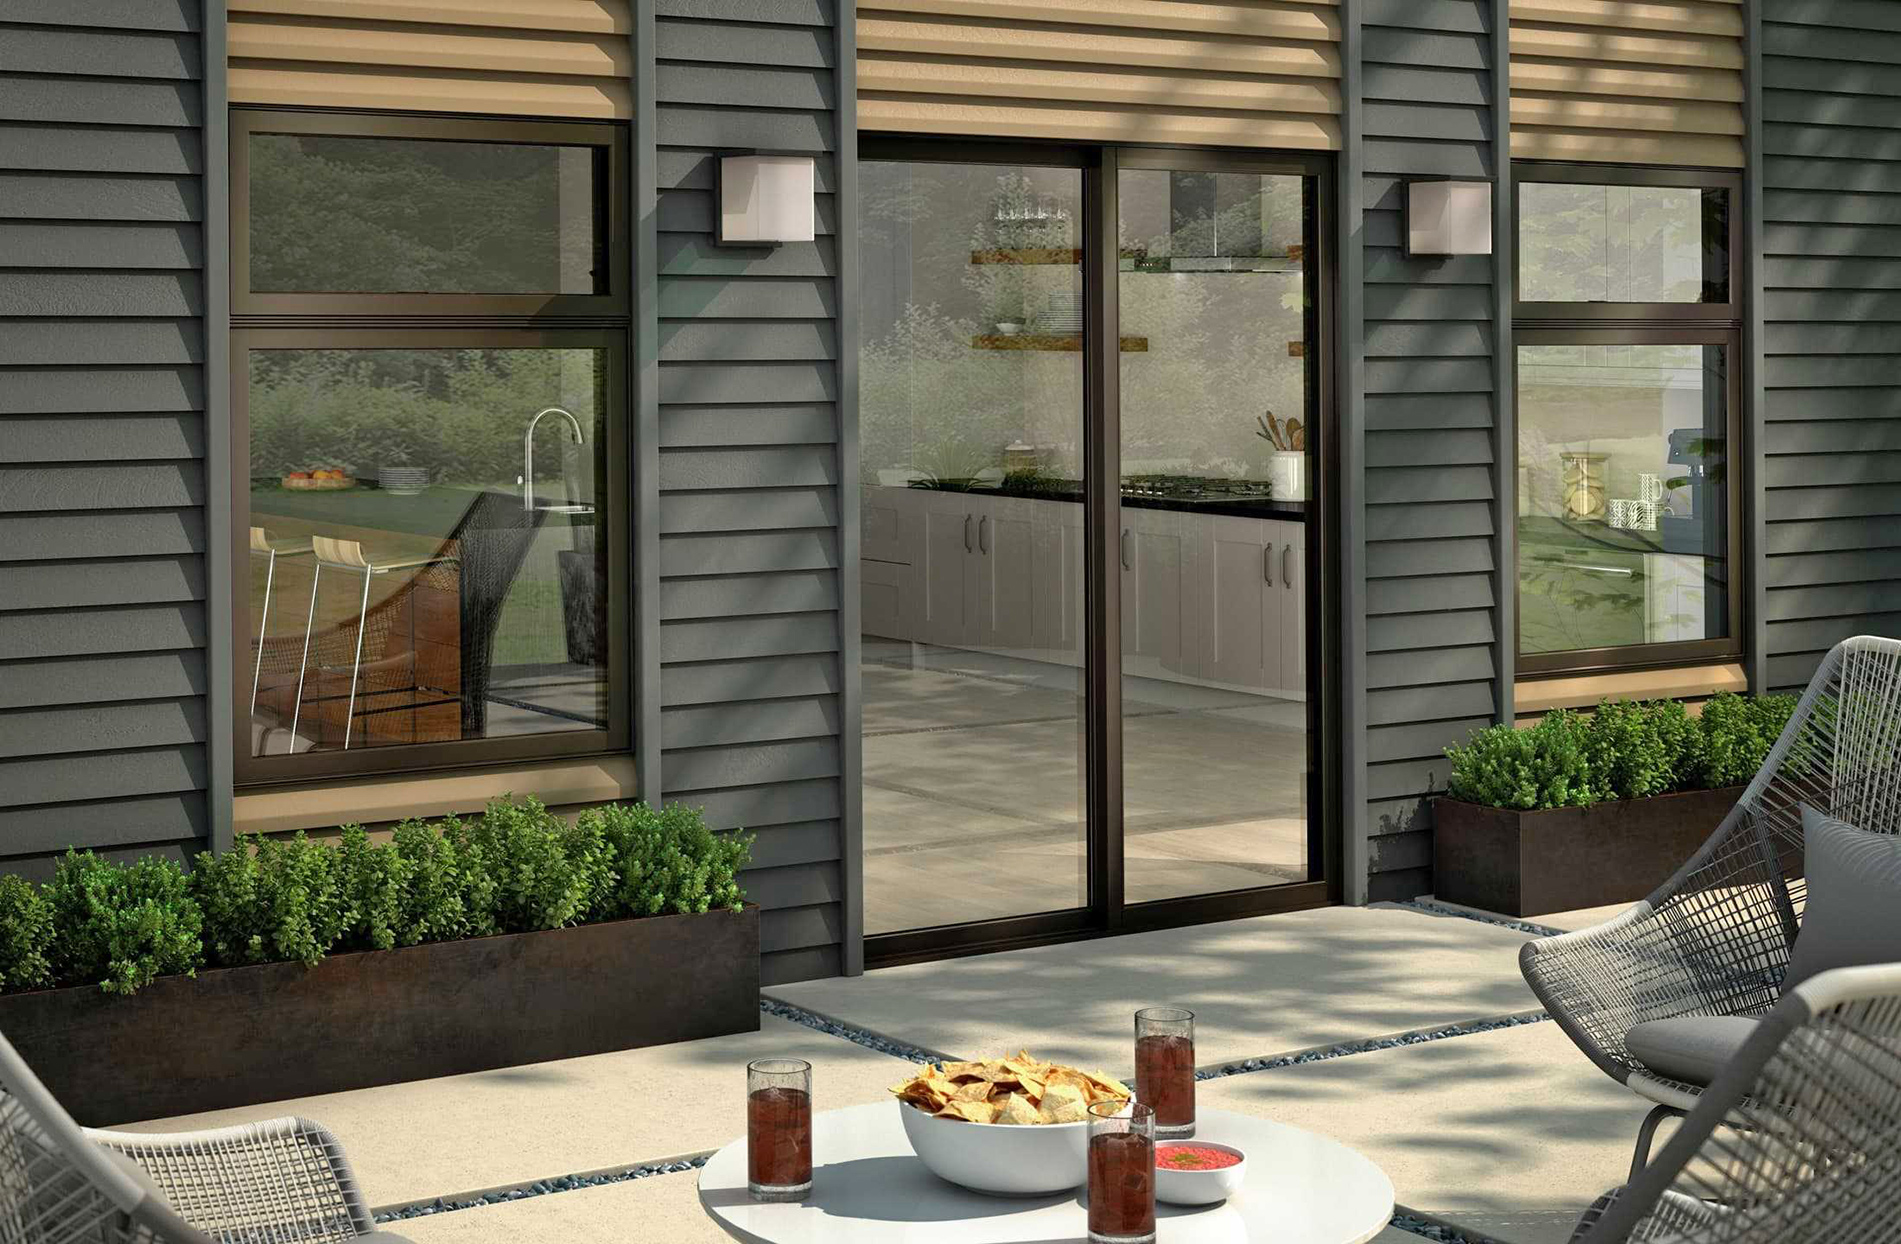 sliding patio door from kitchen to back deck